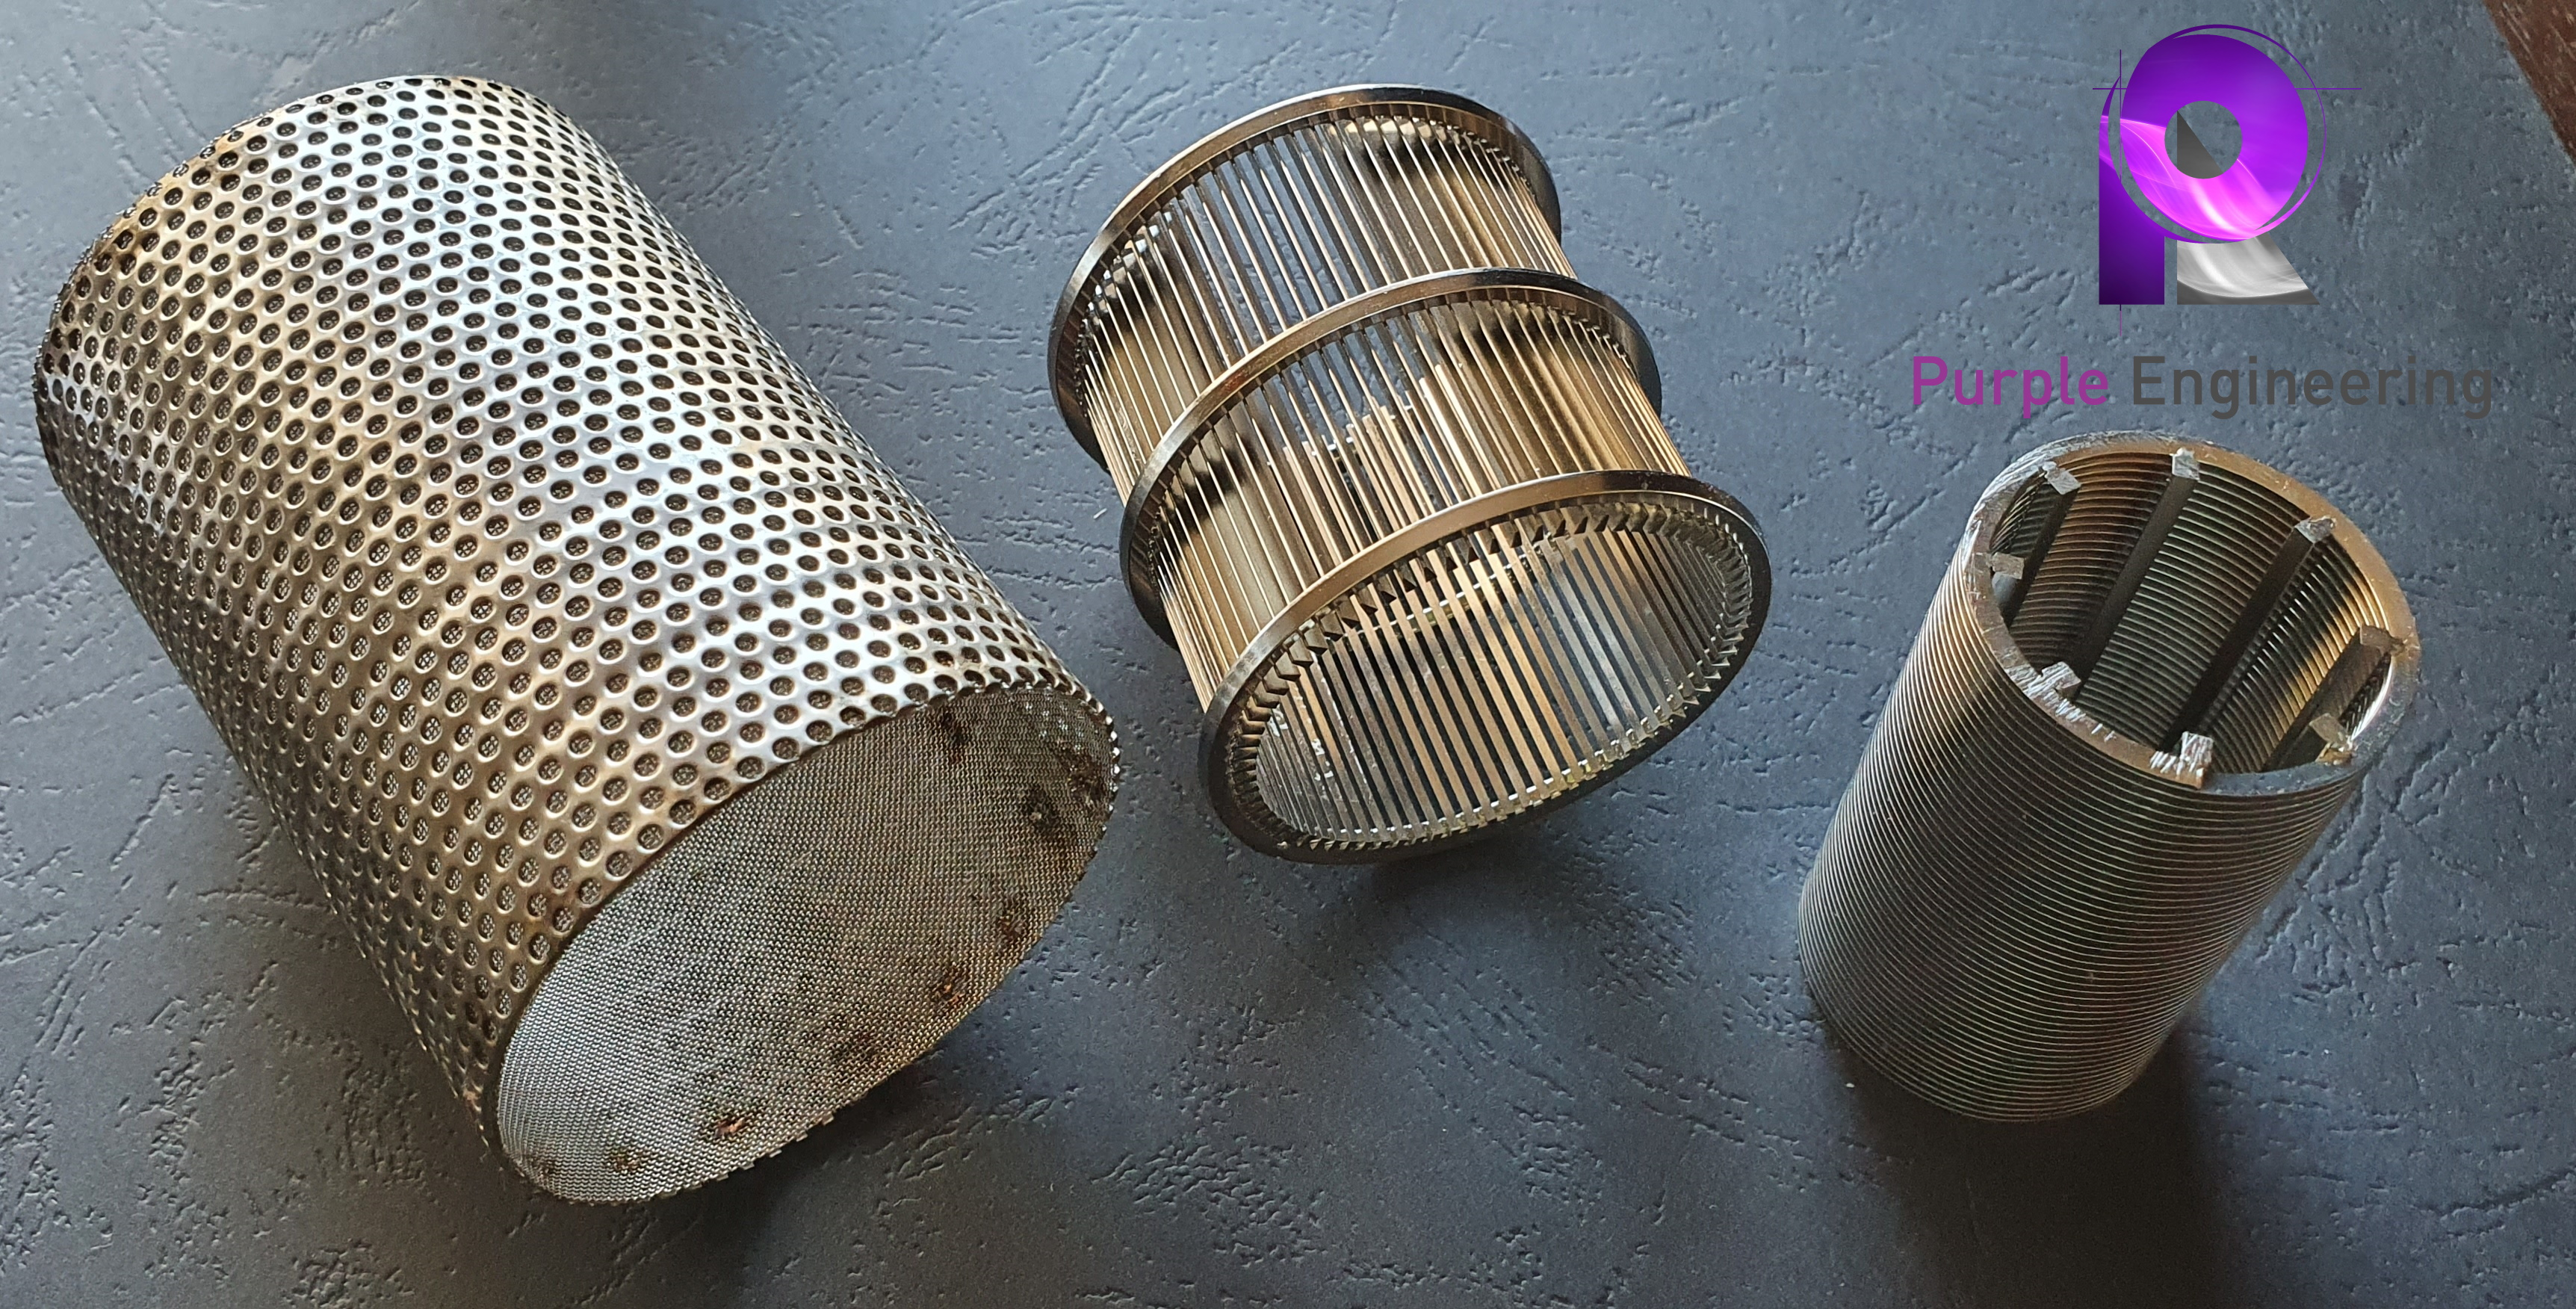 Replacement Basket Strainer, Replacement Basket Strainer Au, Replacement Strainer, Replacement Basket Strainer Australia